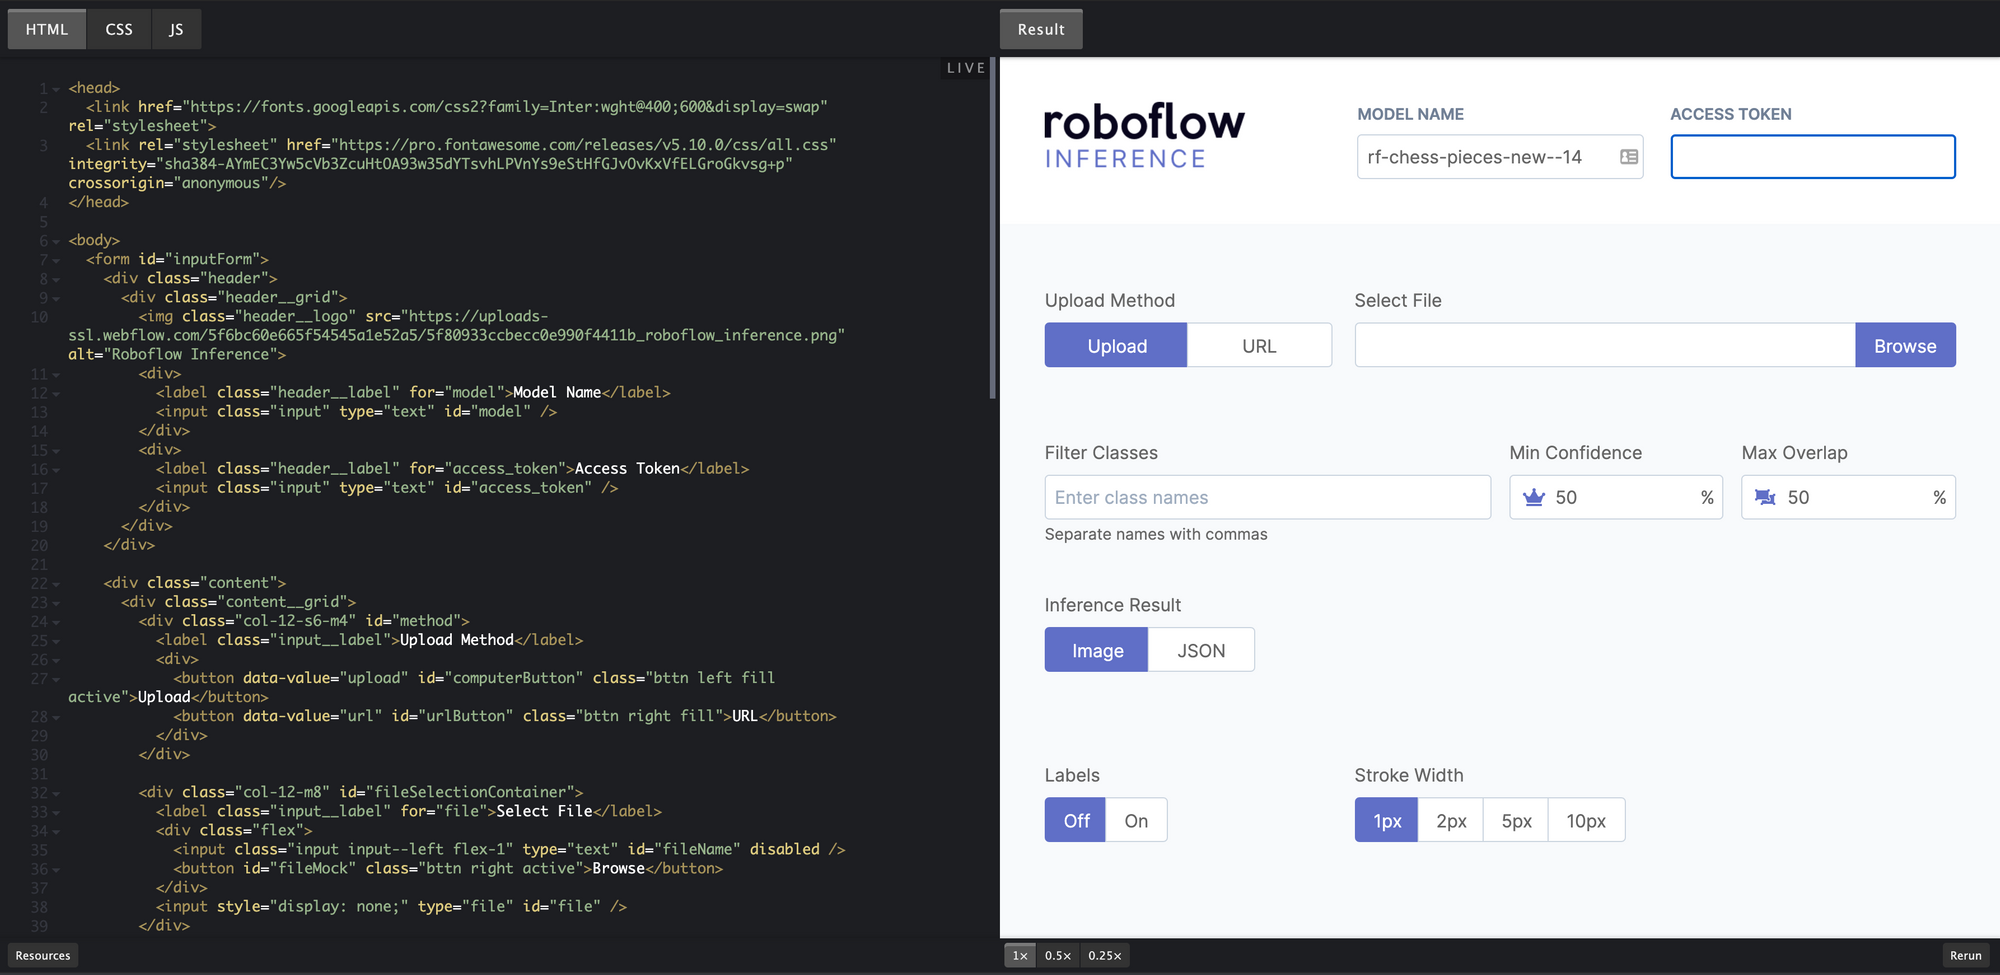 Roboflow inference web application